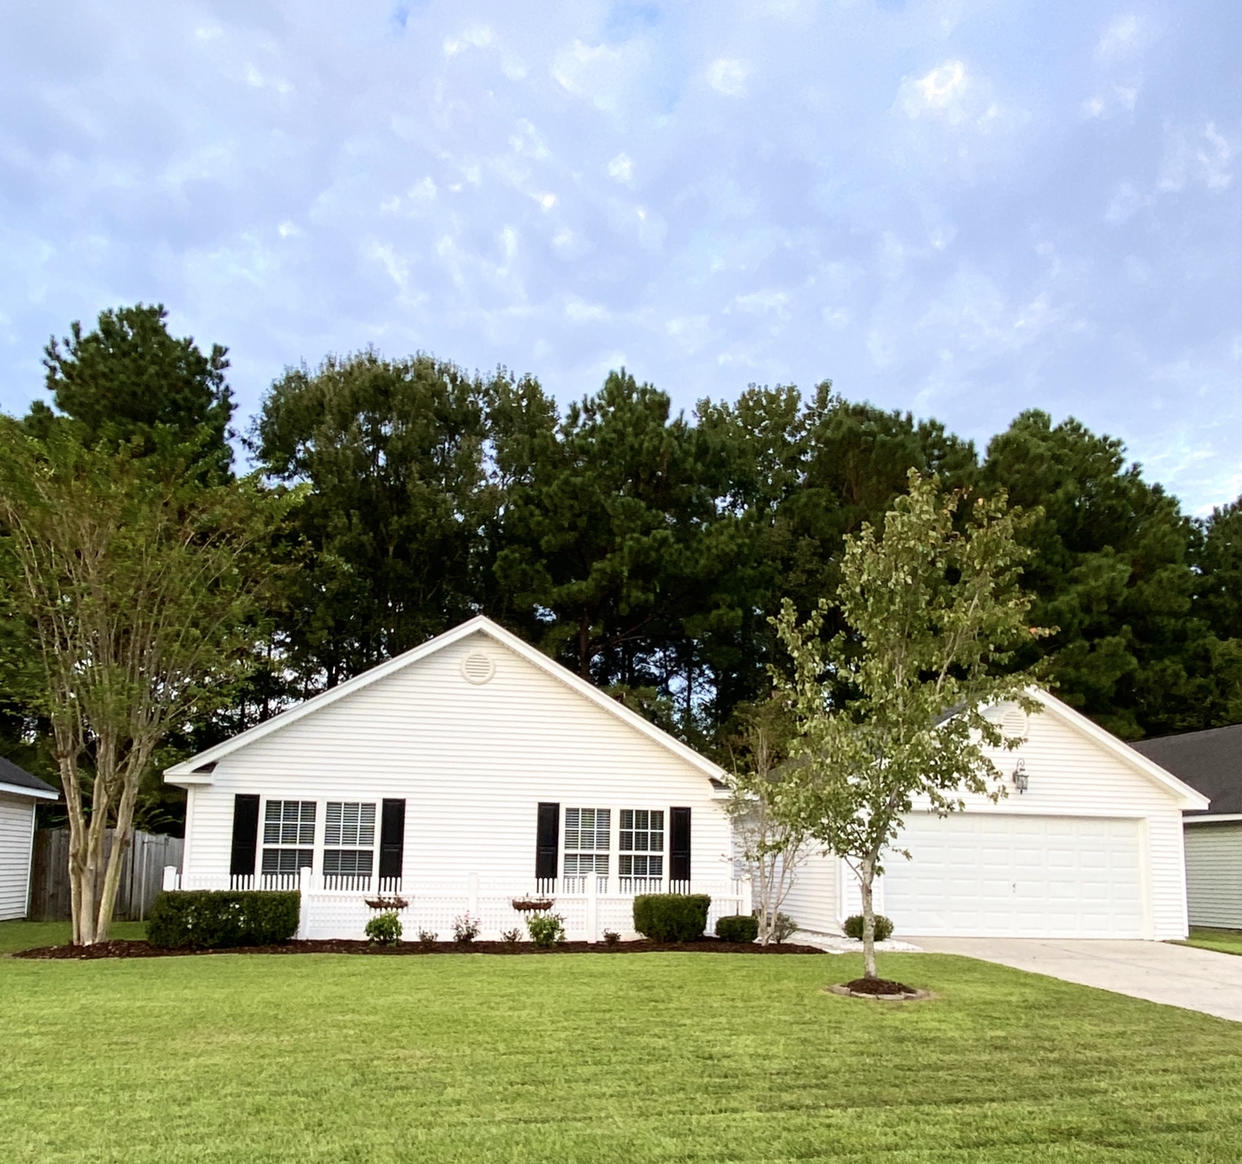 327 Sunburst Way Summerville, SC 29483